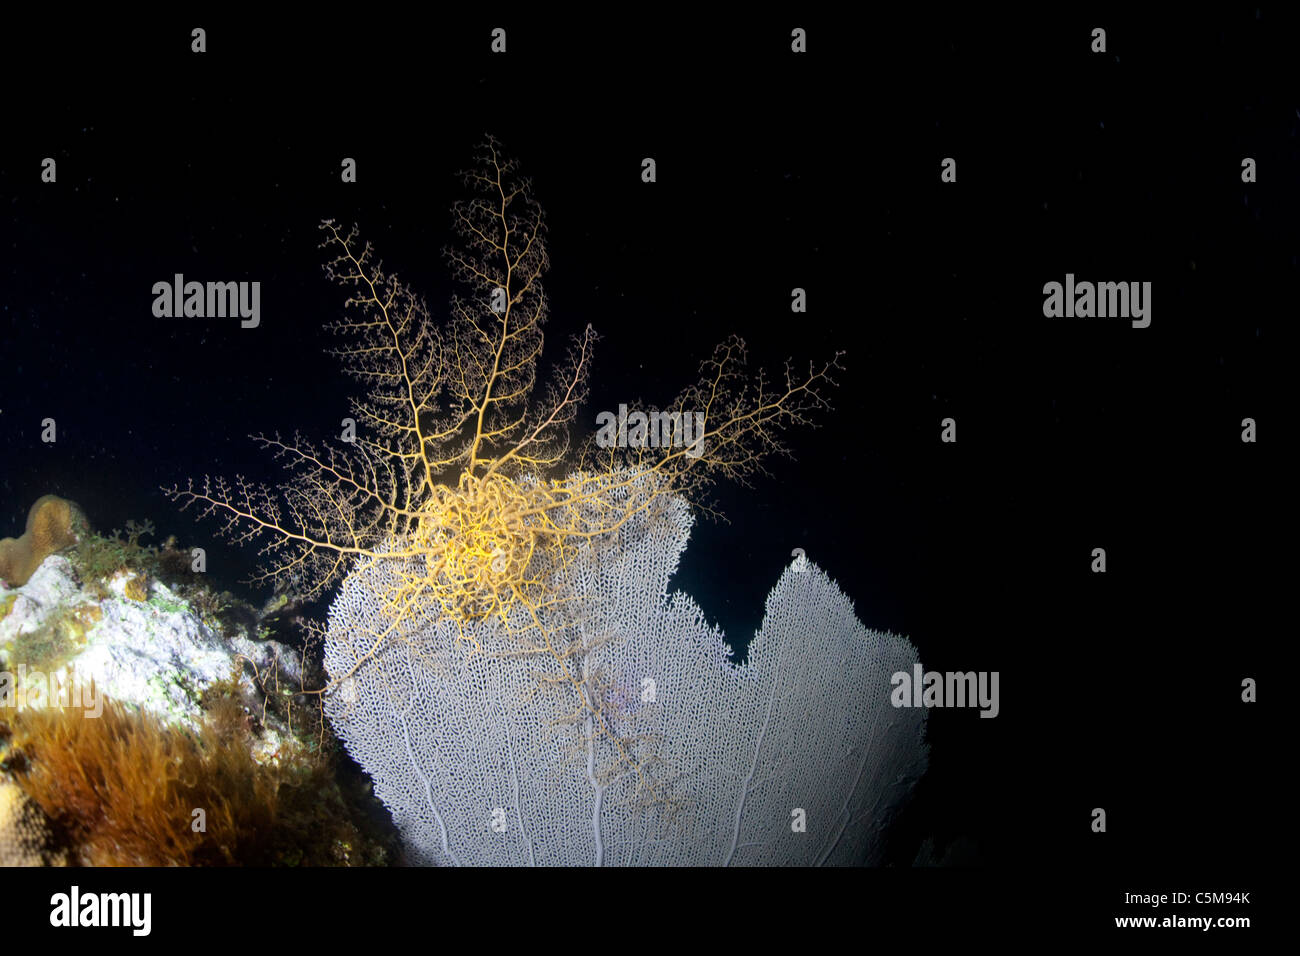 A basket star rests on a sea fan coral on a night dive at Roatan, off the coast of Honduras. - Stock Image